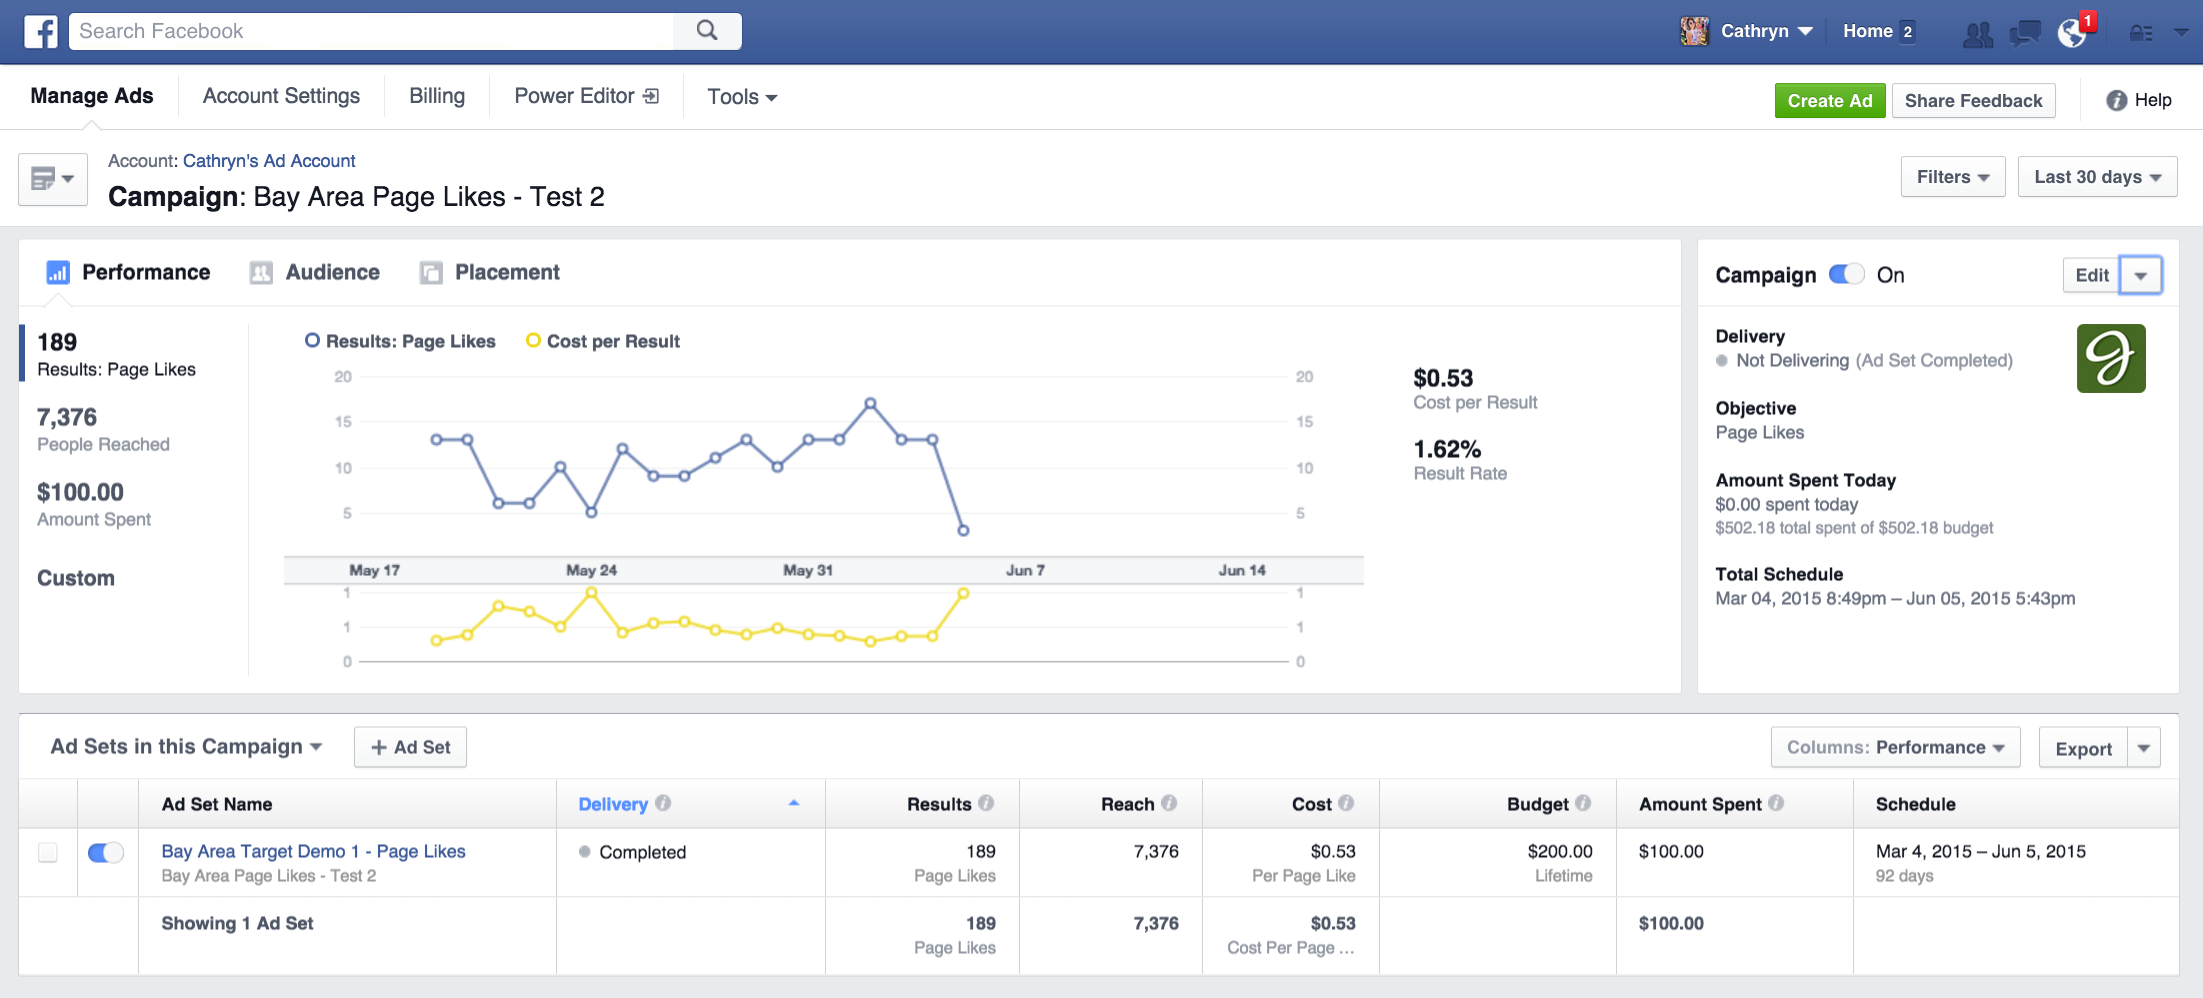 Facebook Ad Manager screenshot